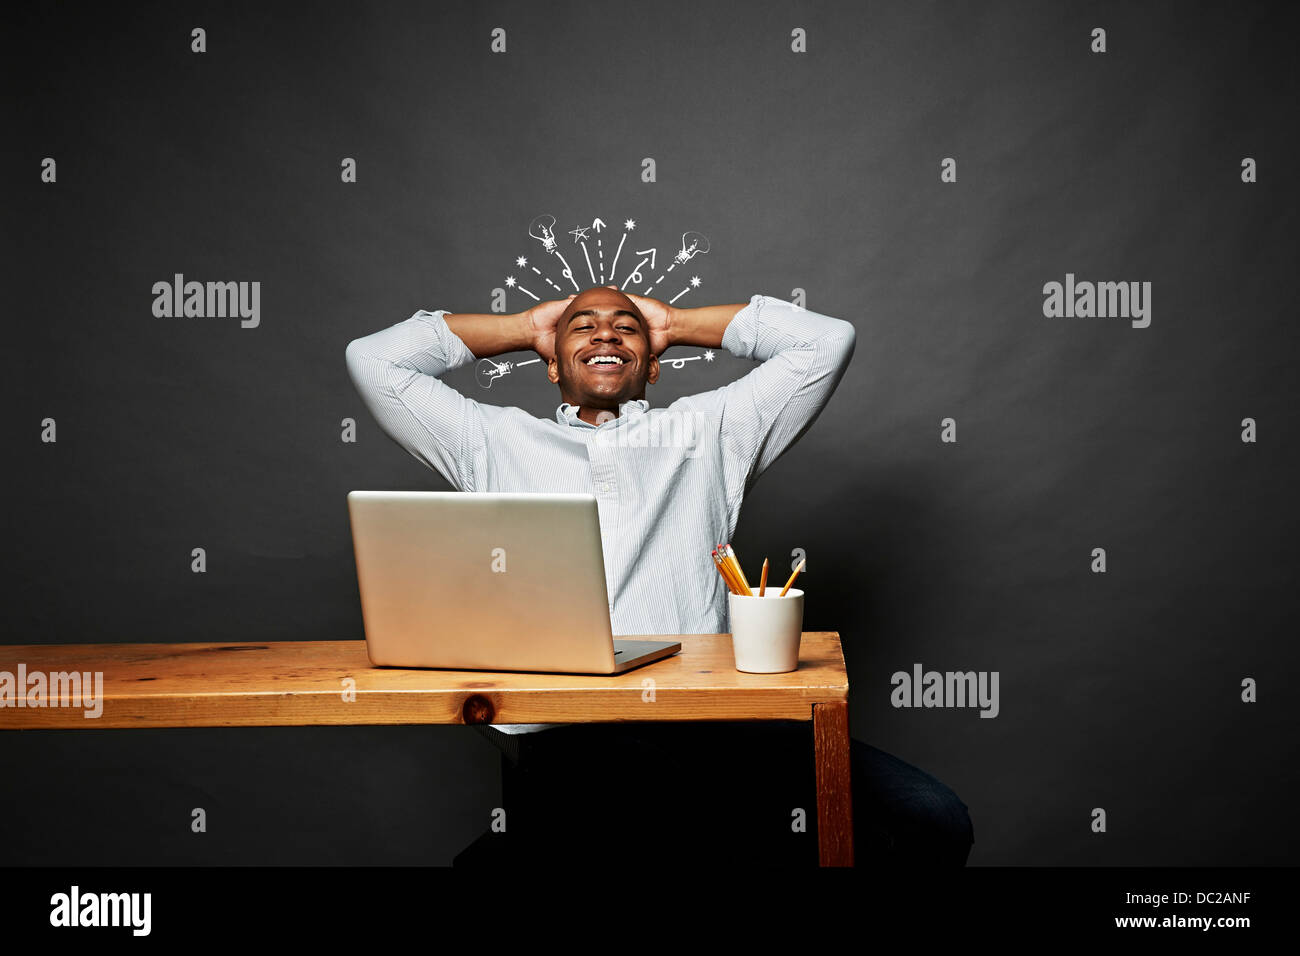 Man laughing with explosion of ideas - Stock Image